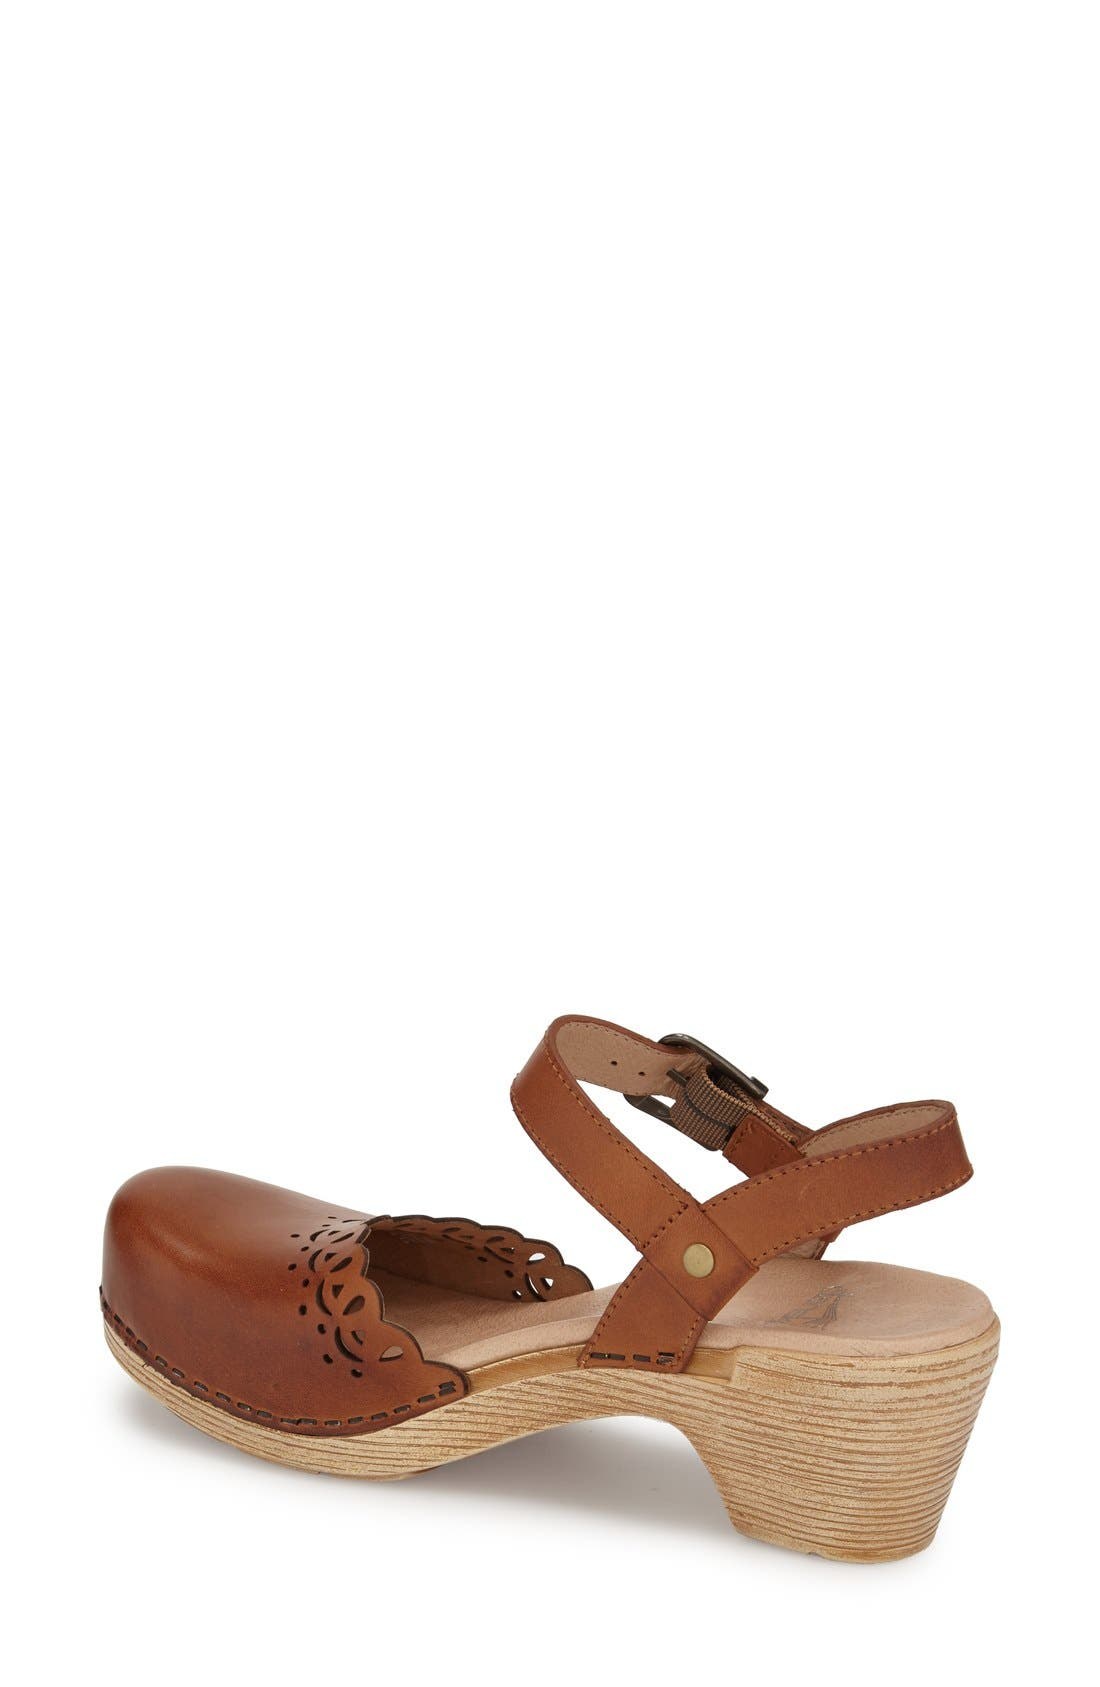 'Marta' Ankle Strap Clog,                             Alternate thumbnail 7, color,